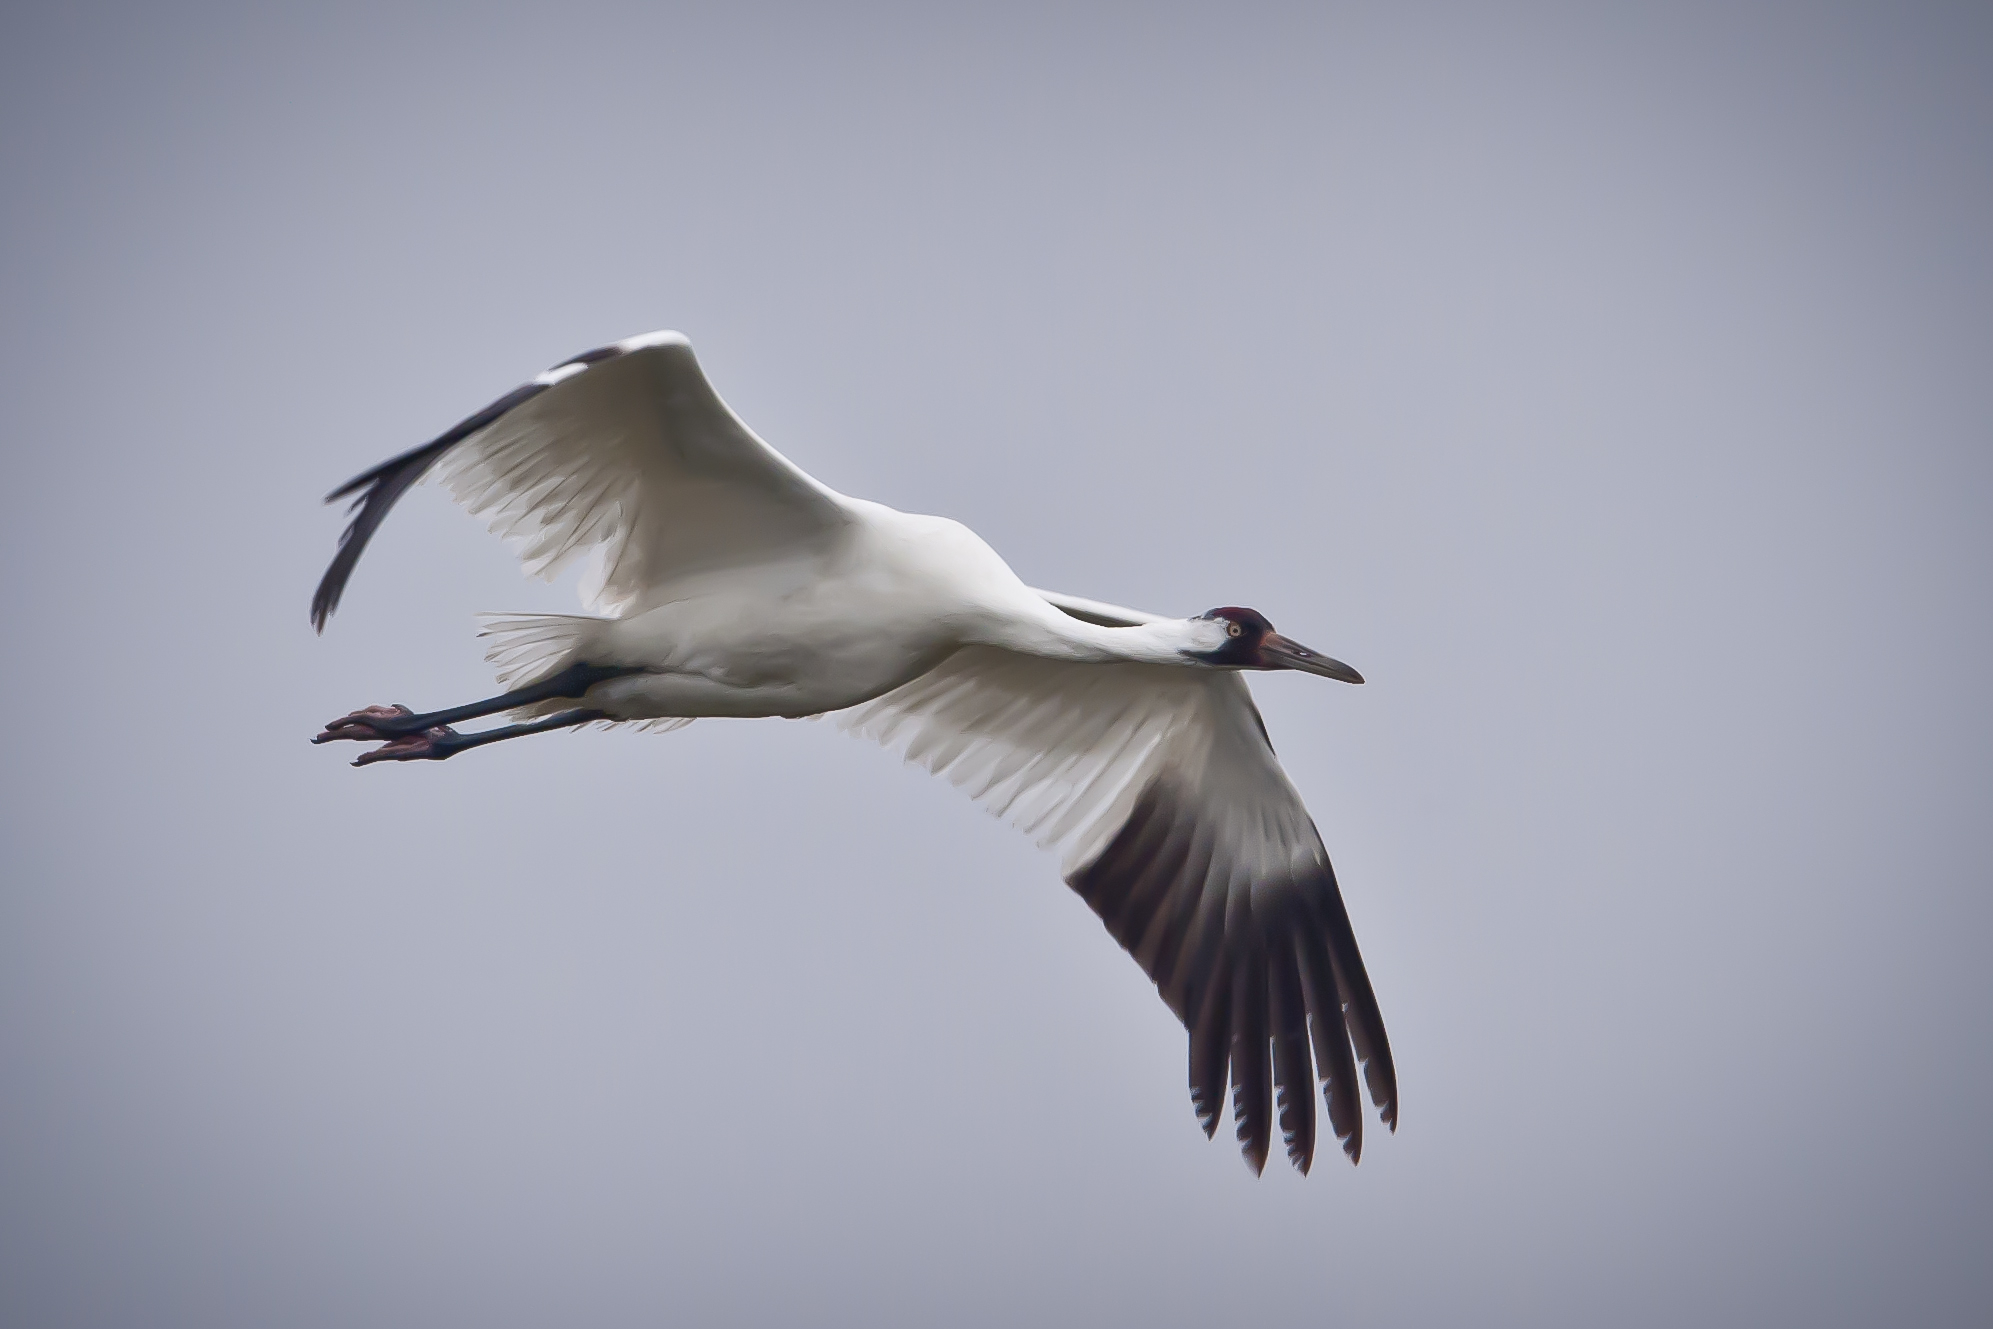 Whooping Crane in flight